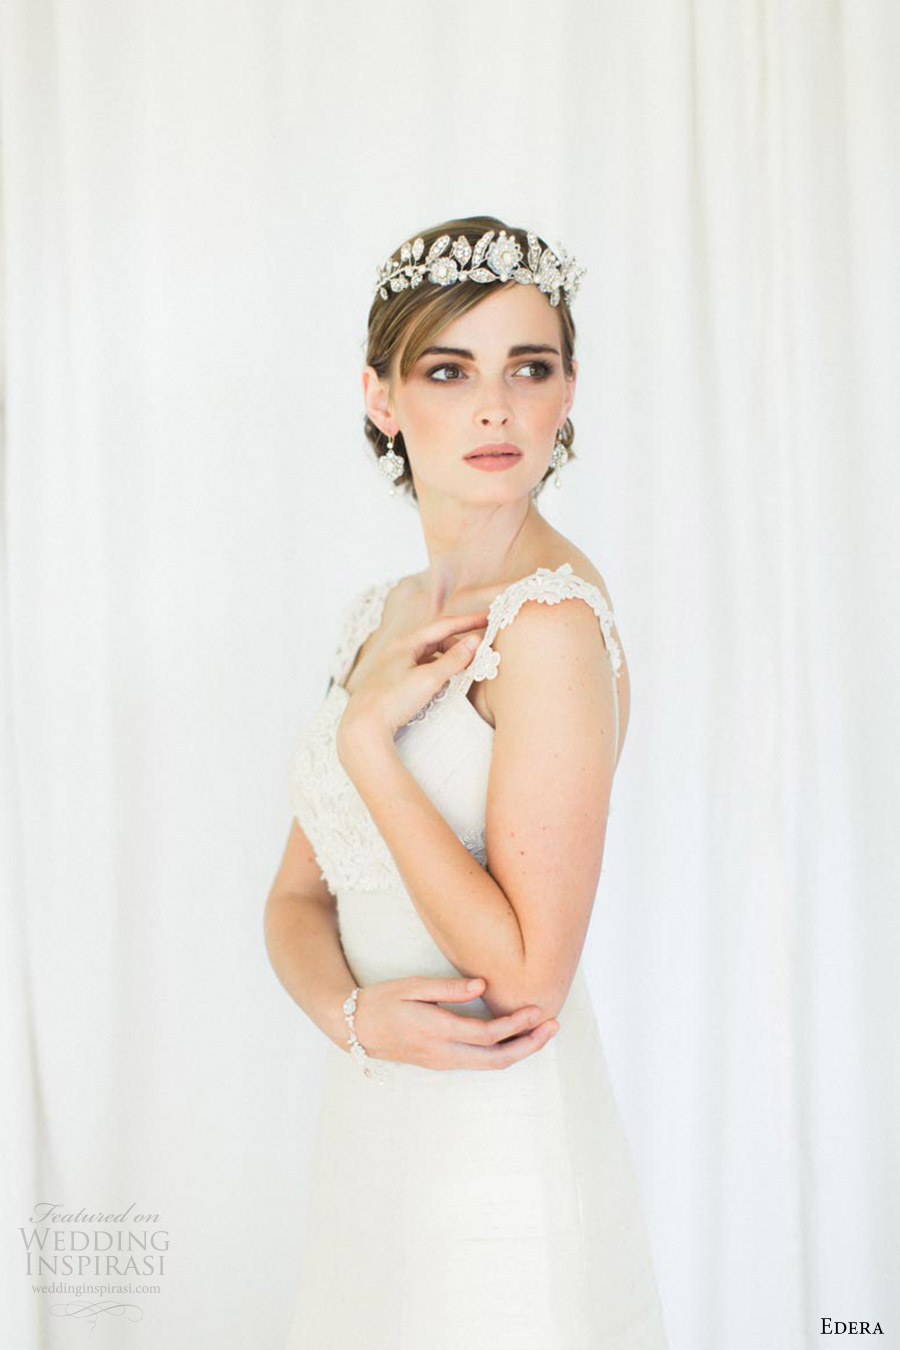 edera jewelry 2016 bridal accessories collection (aquarelle) tiara fv romantic edwardian inspired bride